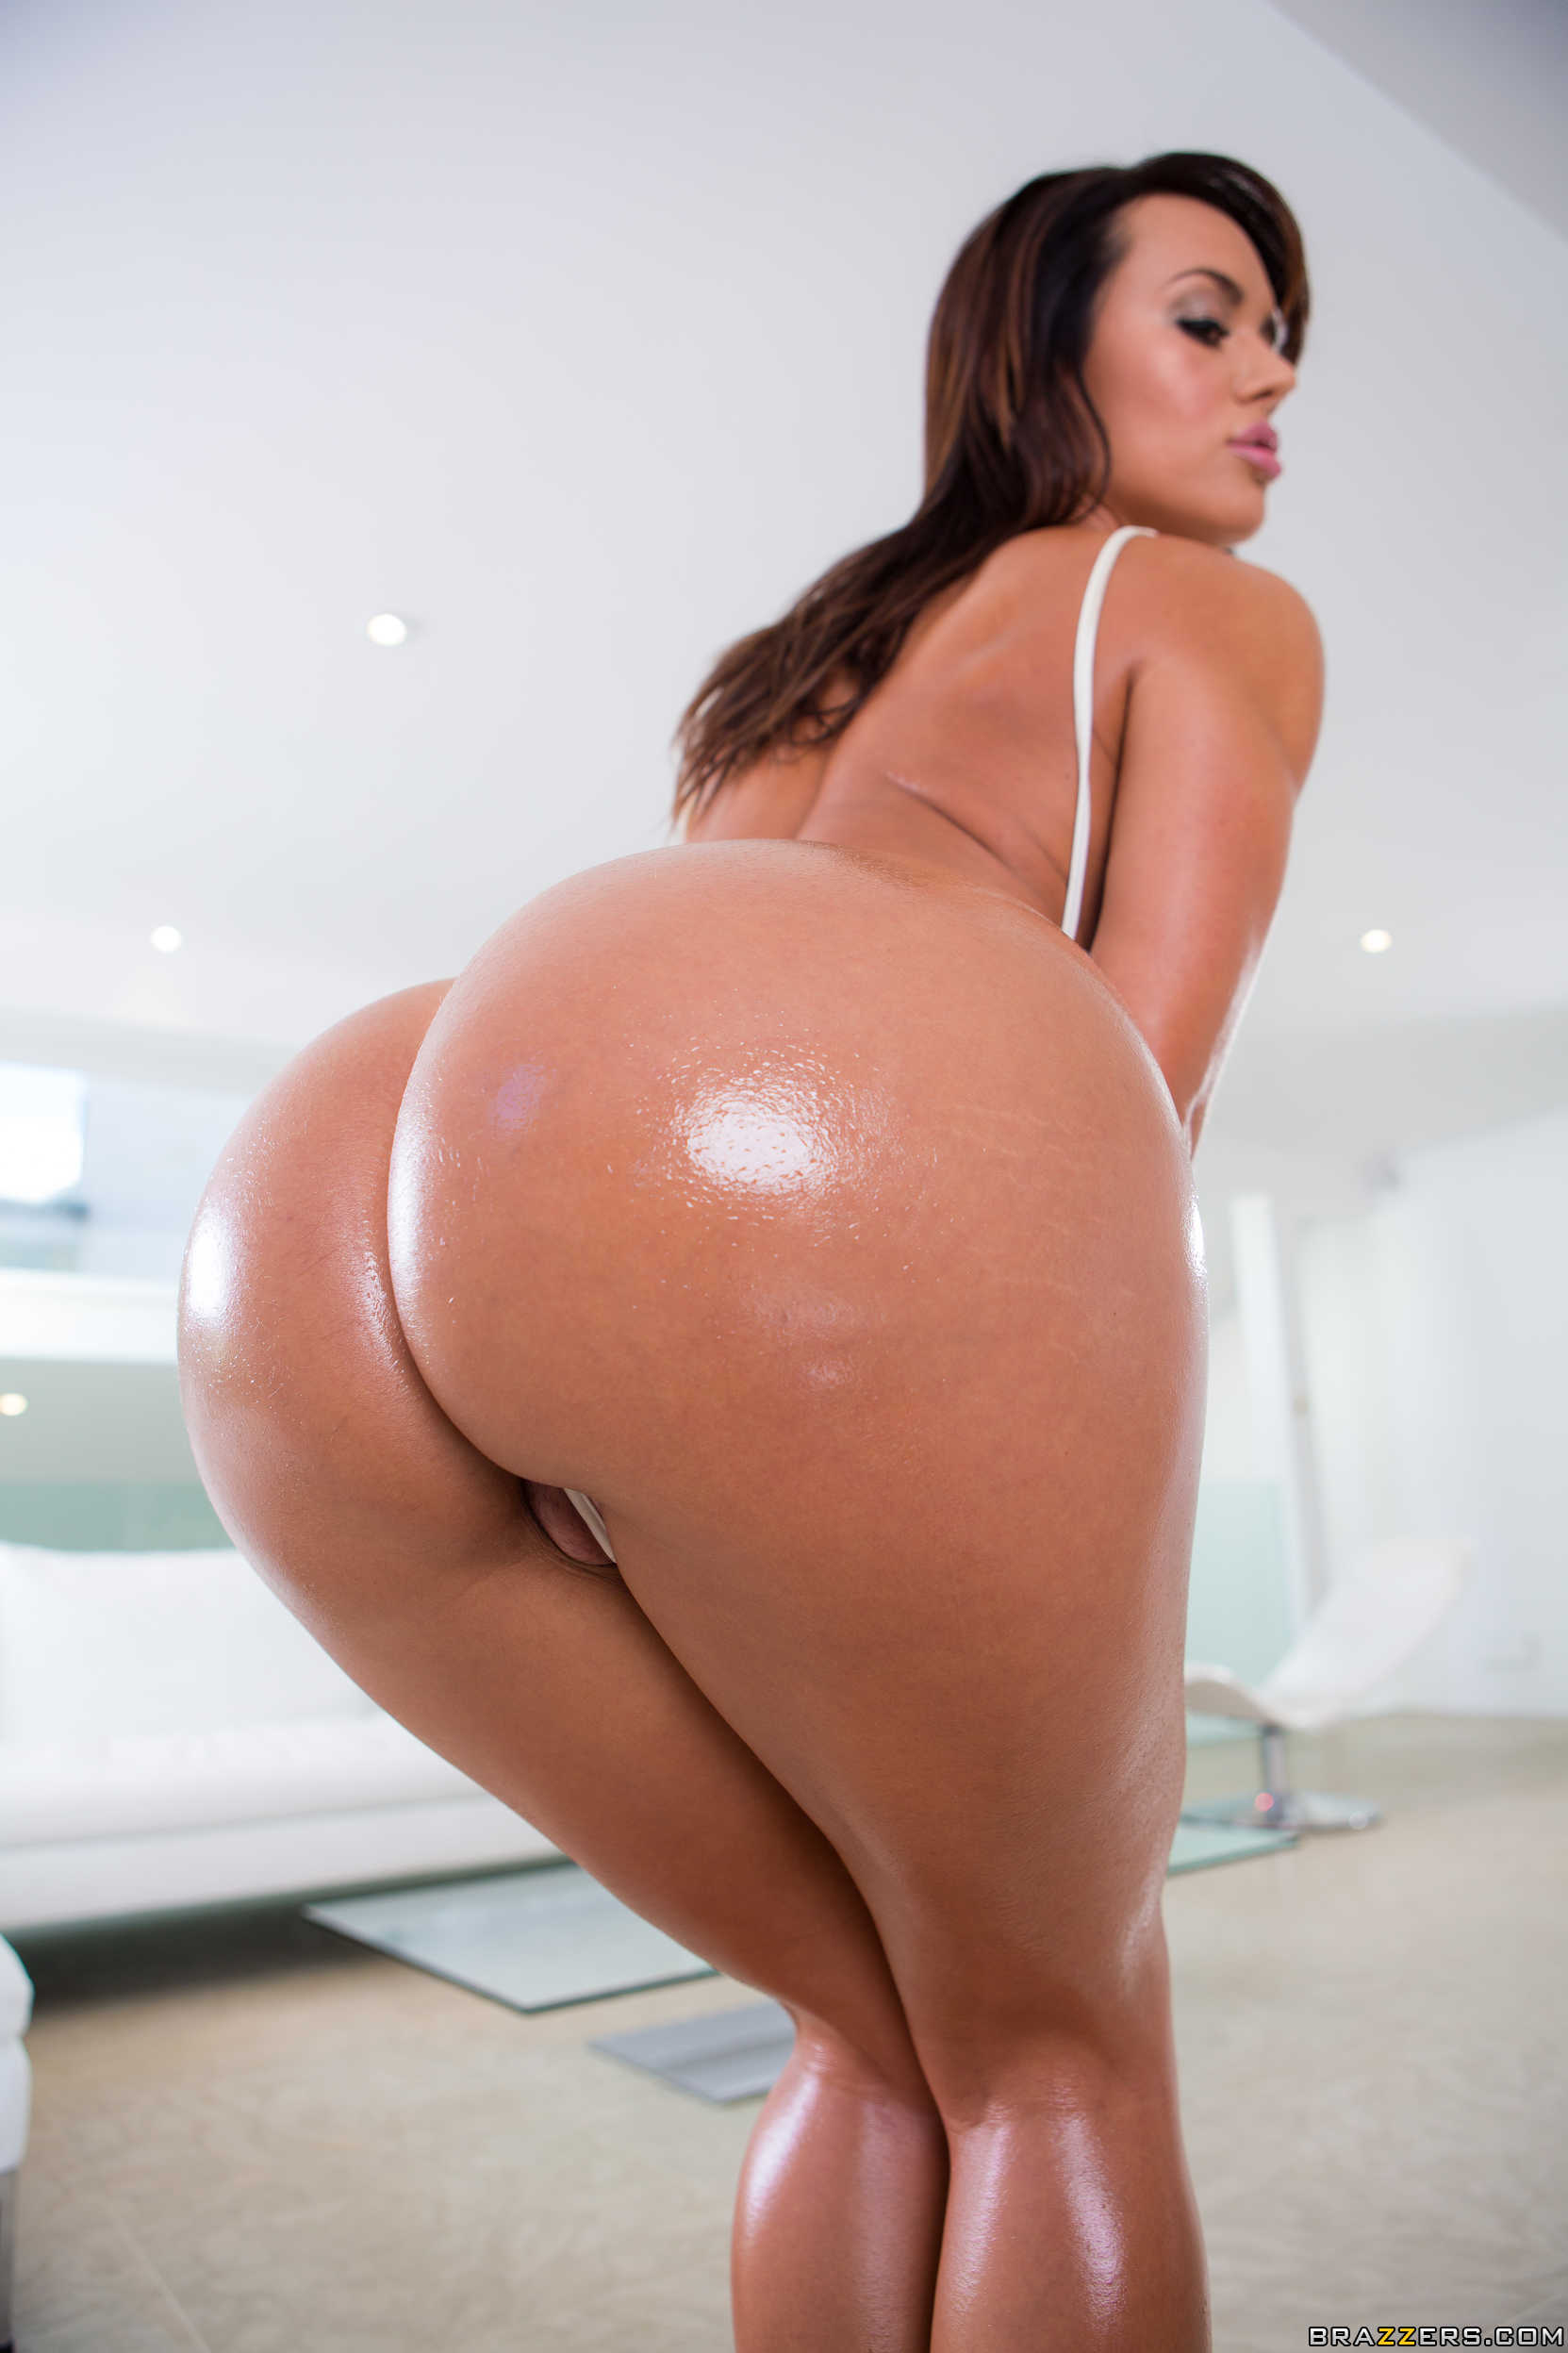 Brazzers franceska jaimes ass - hot images